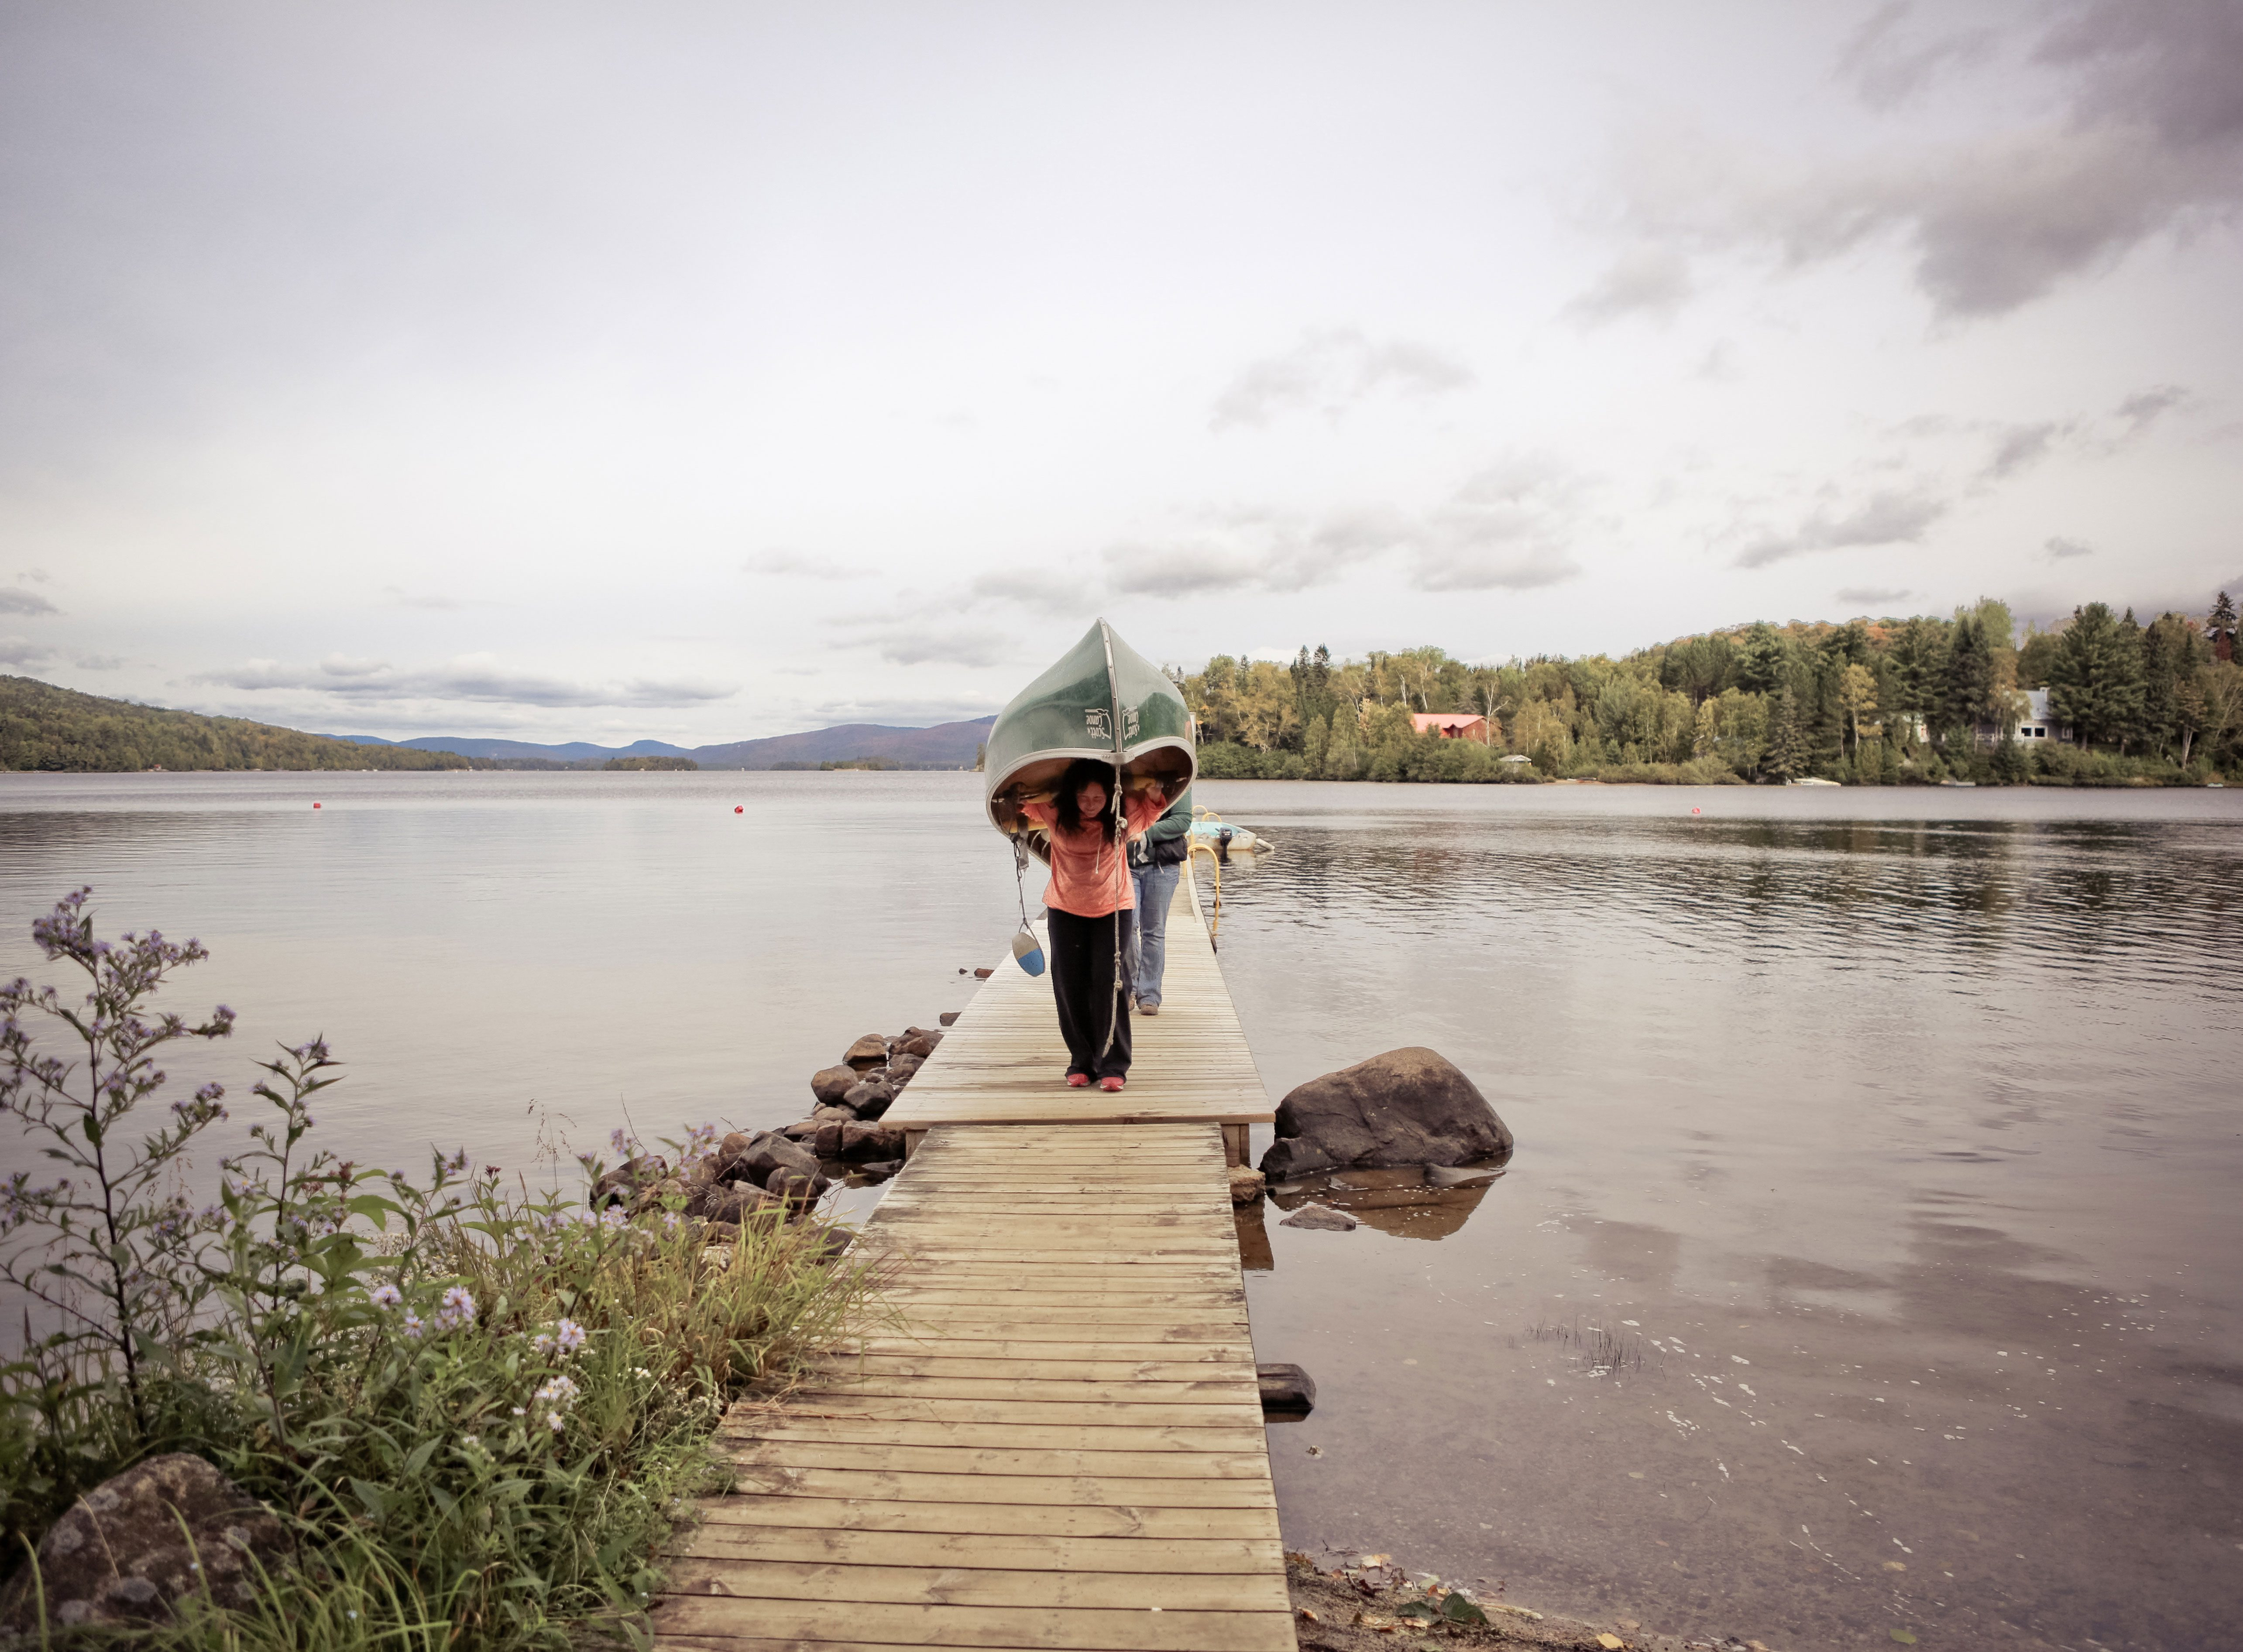 Canadas Best Summer Camps For GrownUps - 10 amazing summer camps for adults in canada